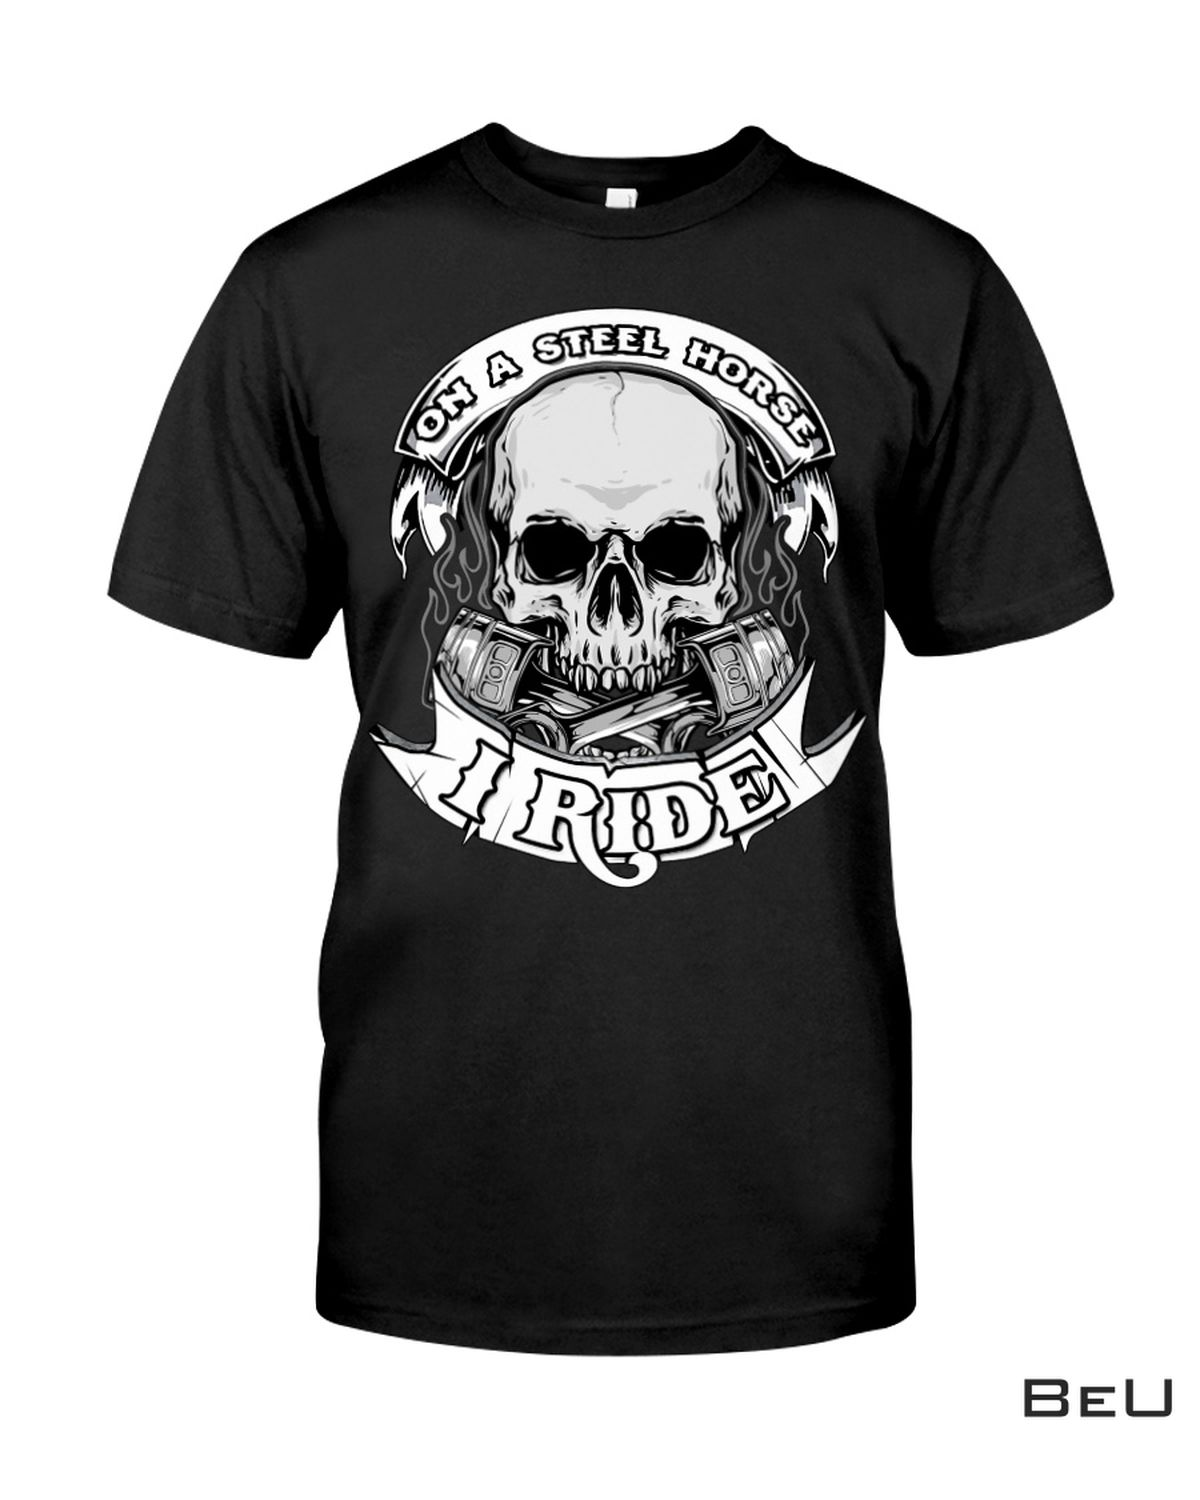 Only For Fan On A Steel Horse I Ride Skull Shirt, hoodie, tank top